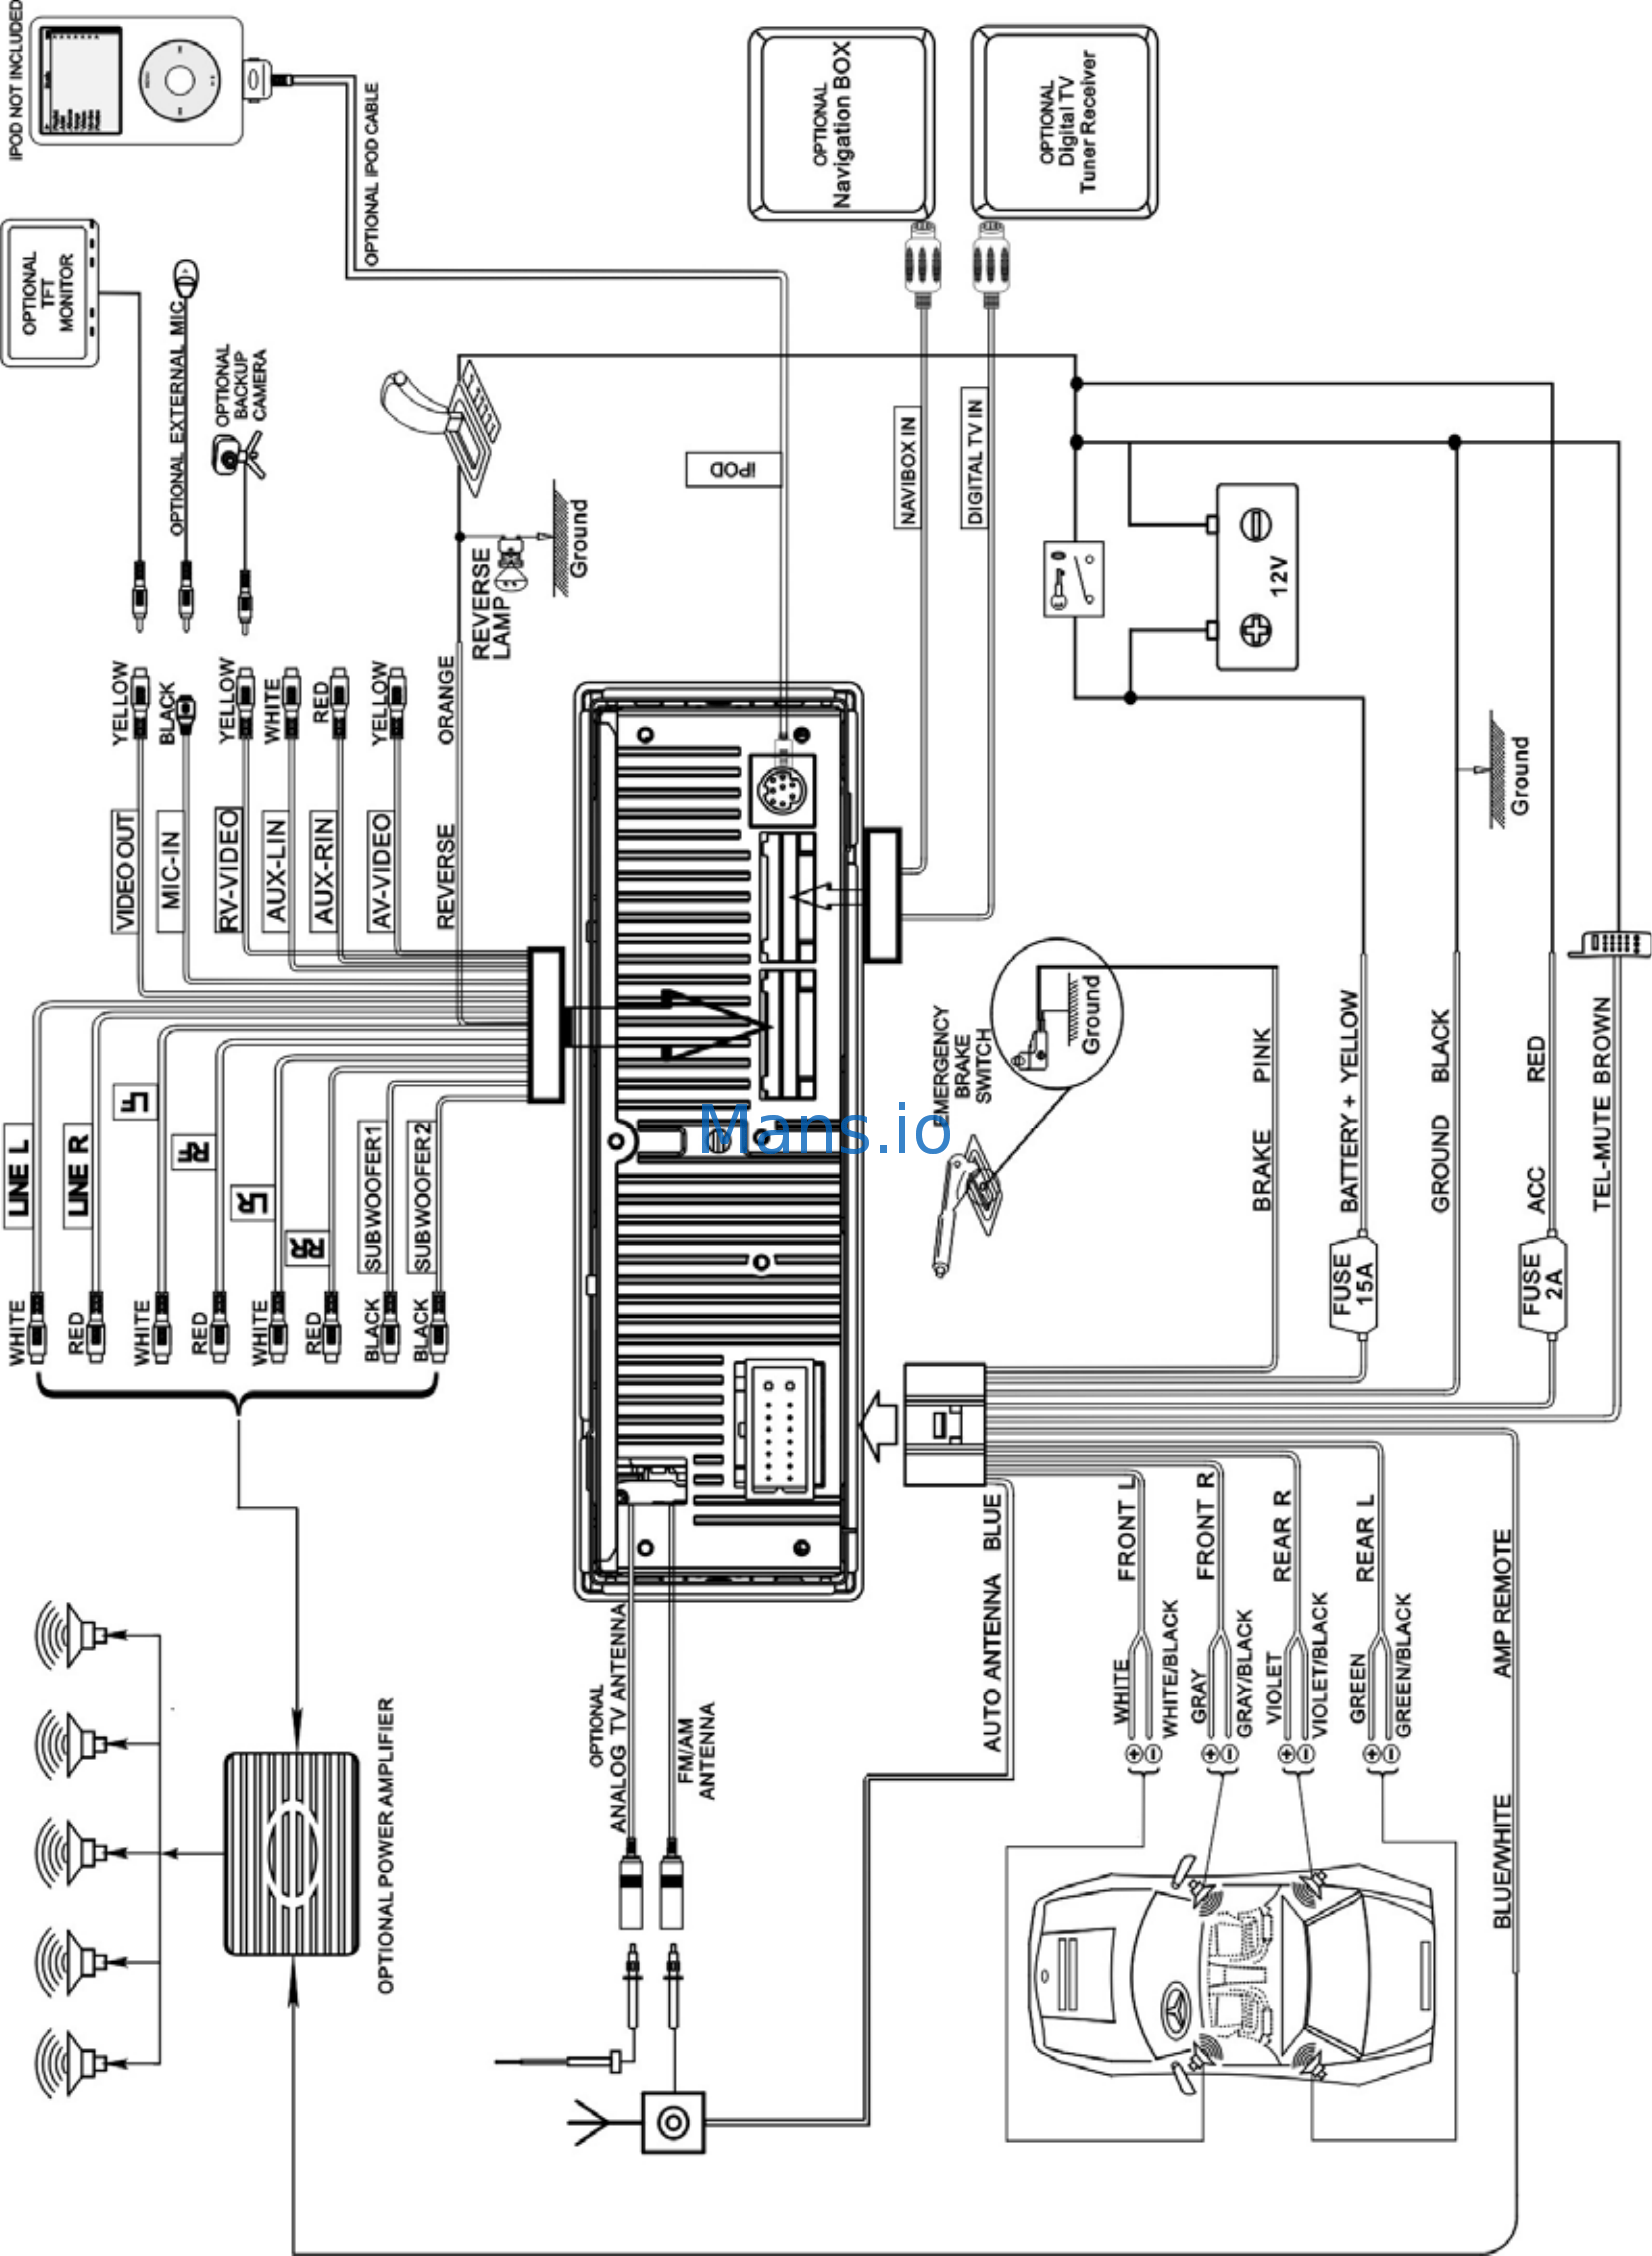 Power Acoustik Pd-931nb Wiring Diagram